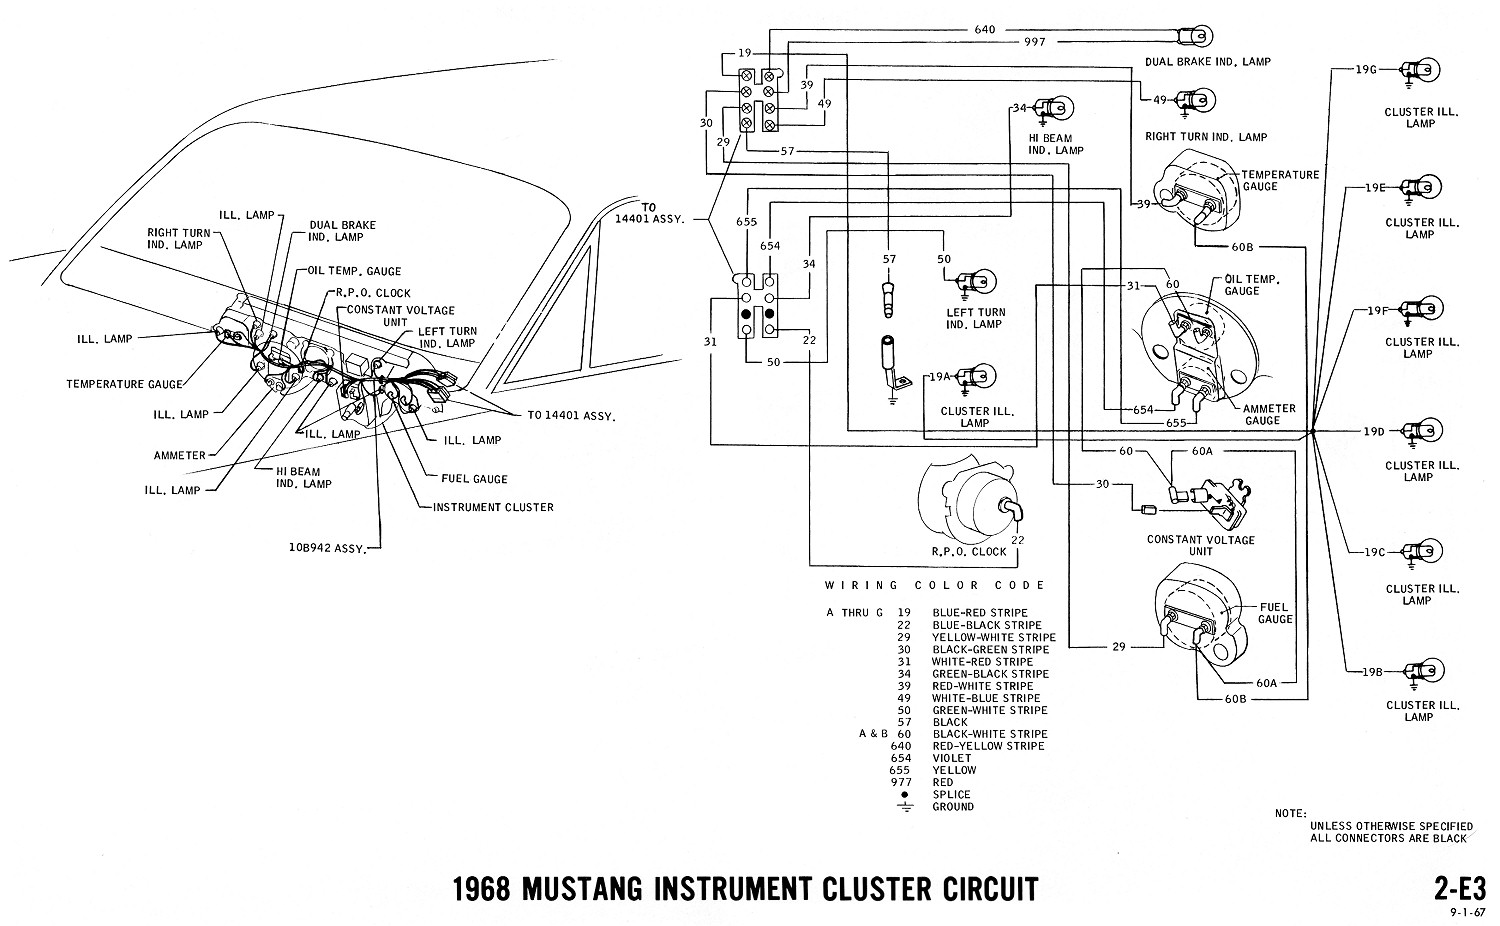 1968 mustang wiring diagrams evolving software rh peterfranza com 66 mustang wiring diagram free 68 mustang underhood wiring diagram